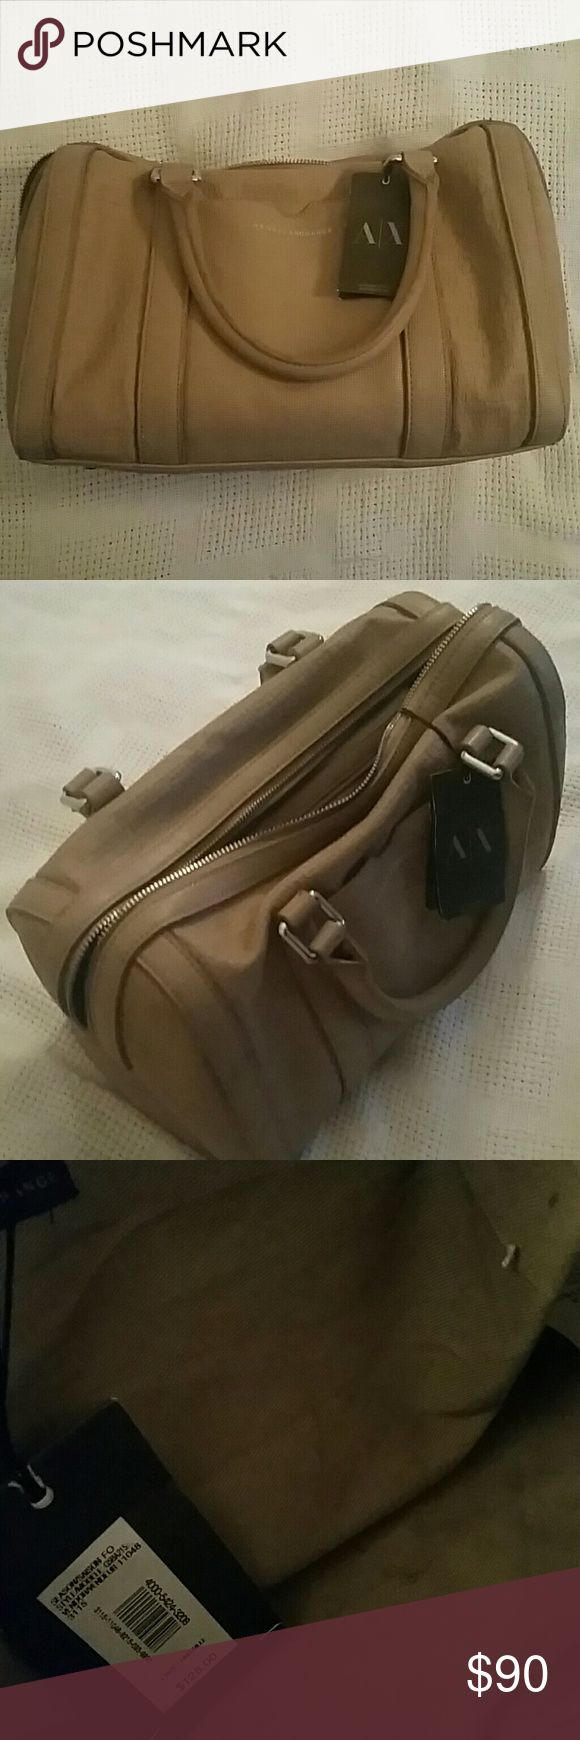 Armani Exchange Purse Nude/natural color, medium size, purse. Used twice, 100% leather,  authentic with tags attached. Slight make up stain on inside lining but not too bad. Great purse to downsize and show off! A/X Armani Exchange Bags Satchels